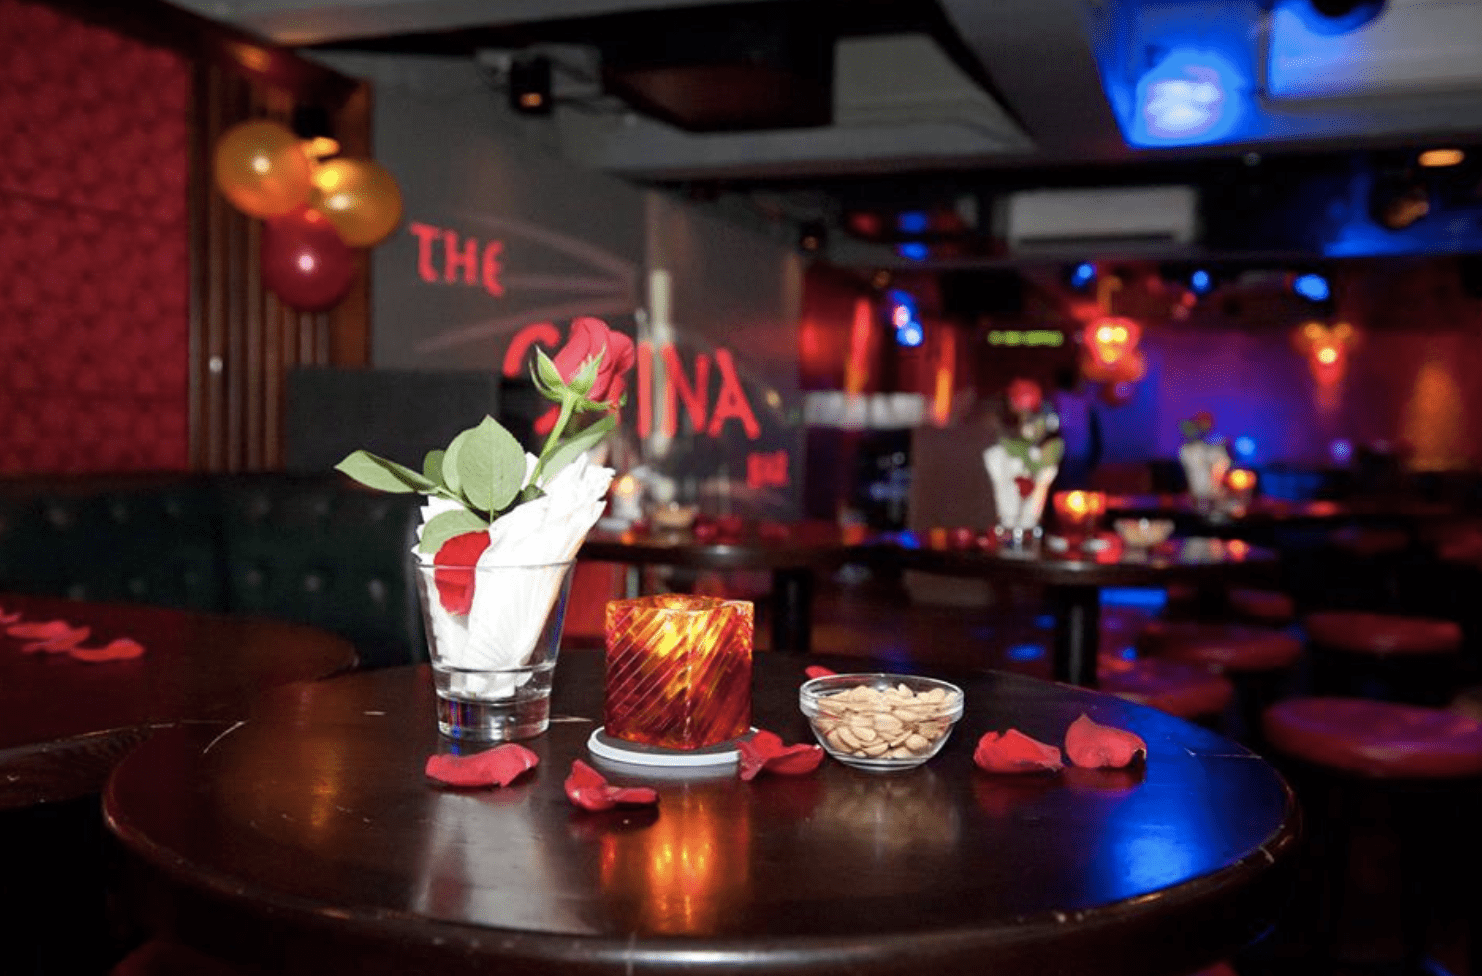 蘭桂坊The China Bar